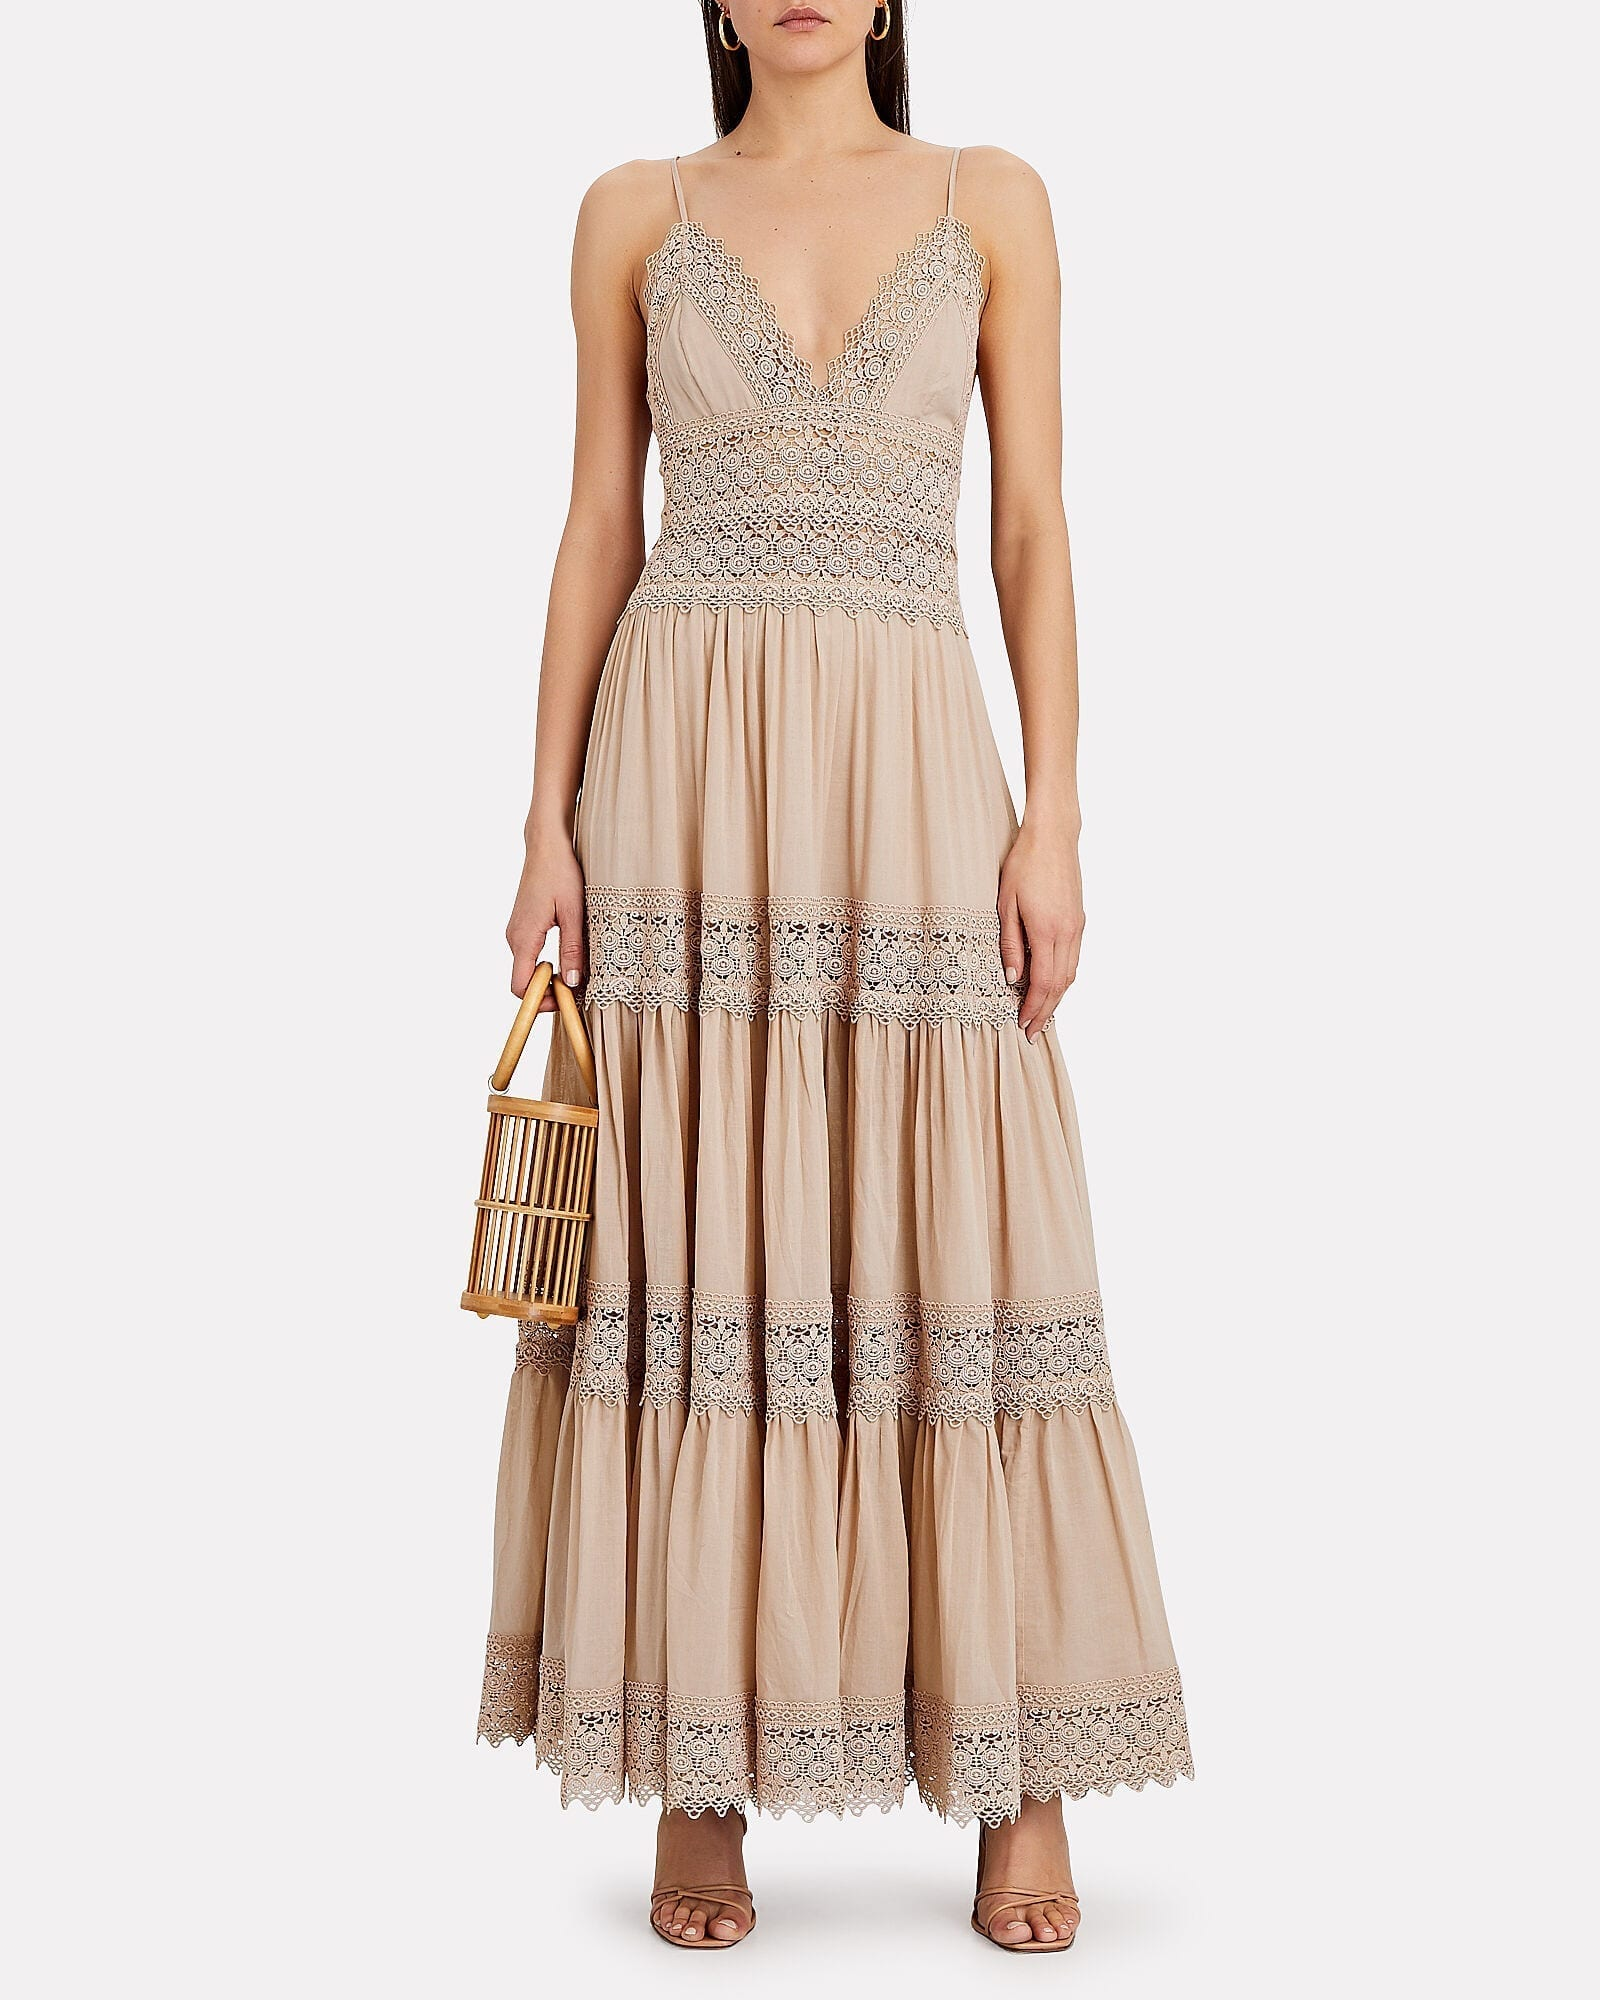 CHARO RUIZ Cindy Lace-Trimmed Tiered Dress